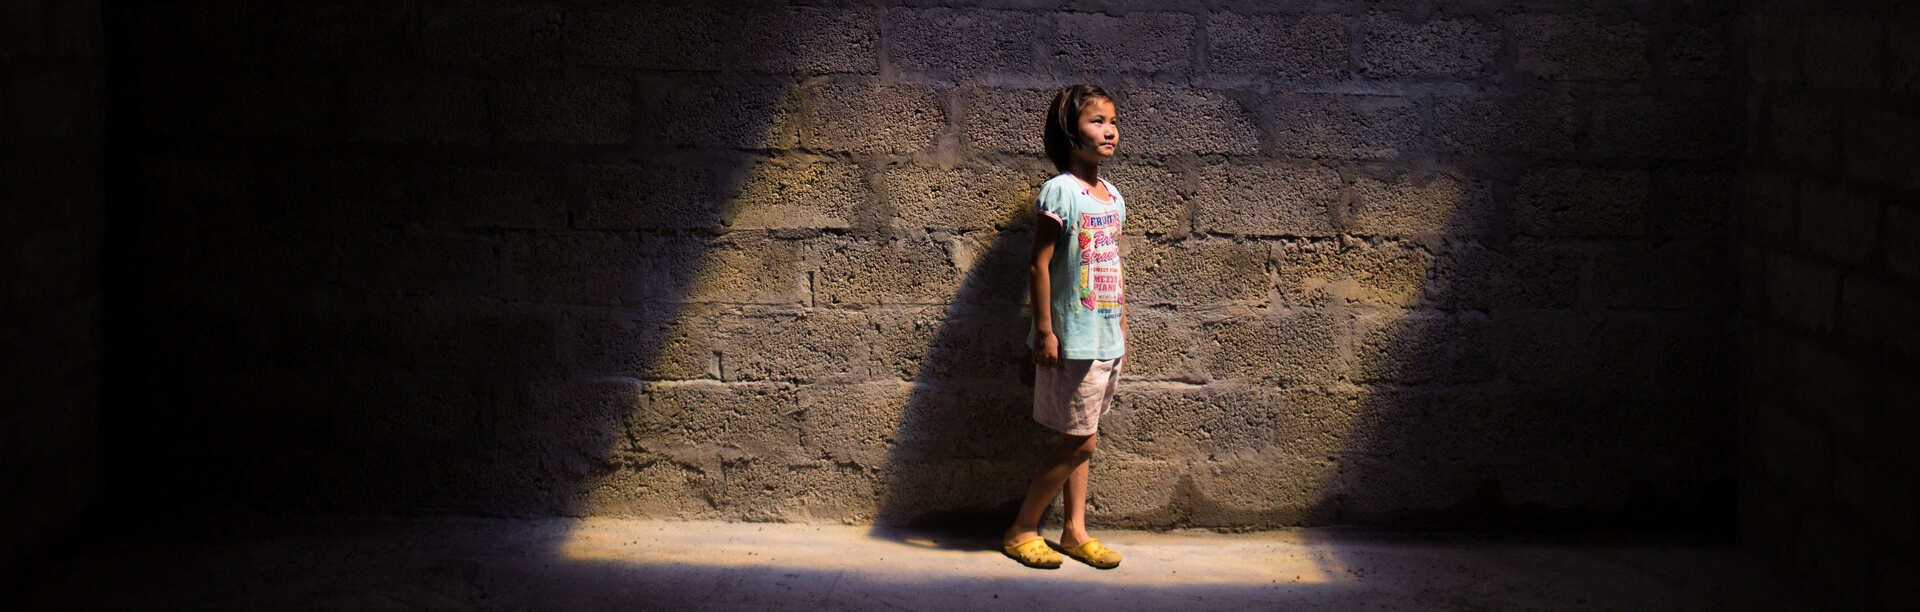 one_girl_asset2.jpg